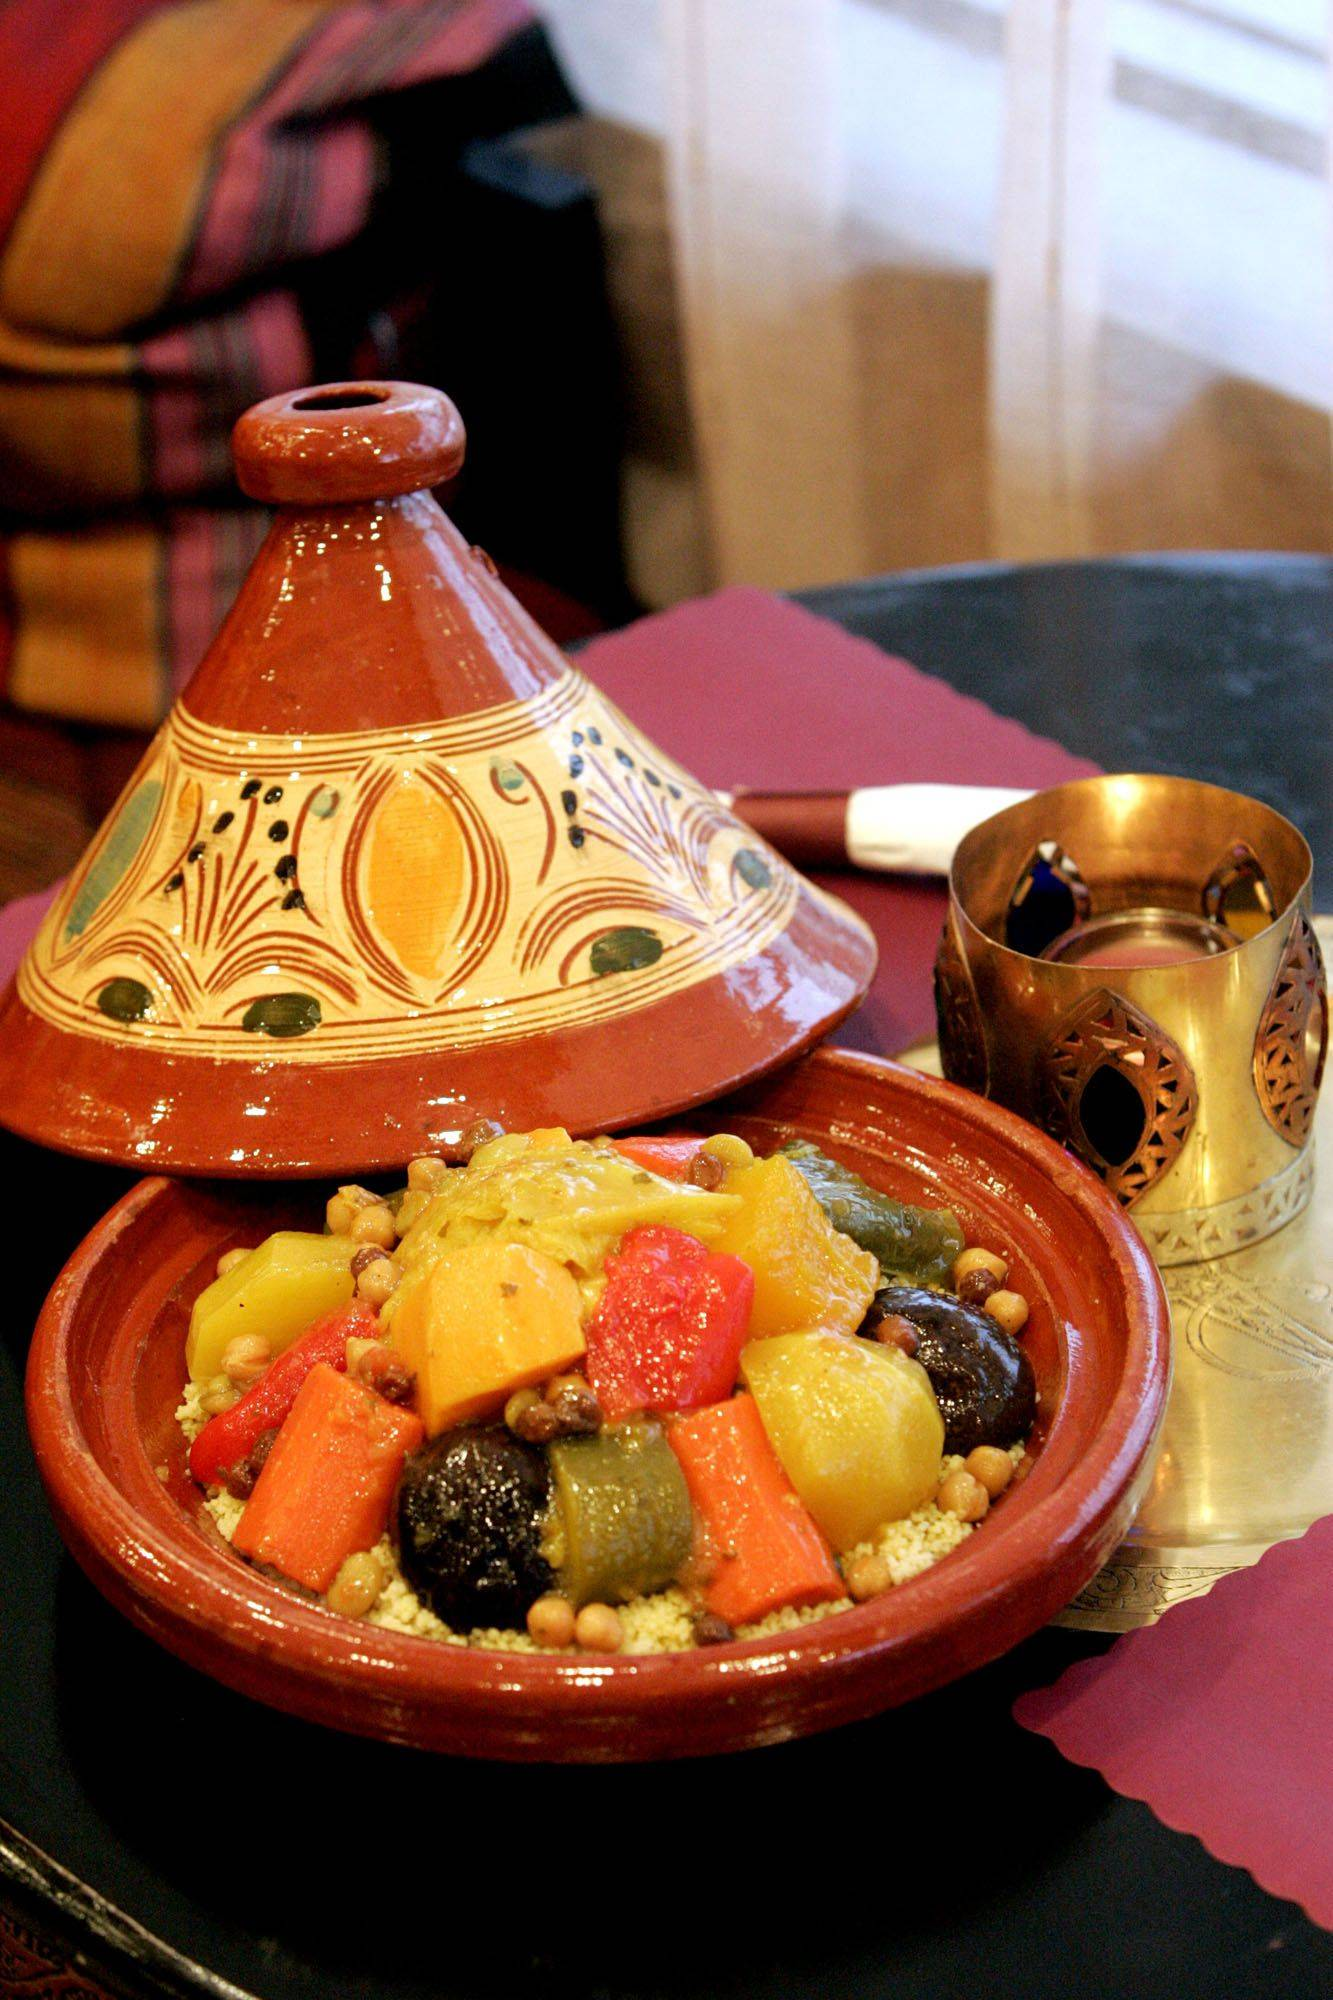 Hearty flavors come together in the Moroccan dishes at Tajine Casablanca in Vernon Hills.